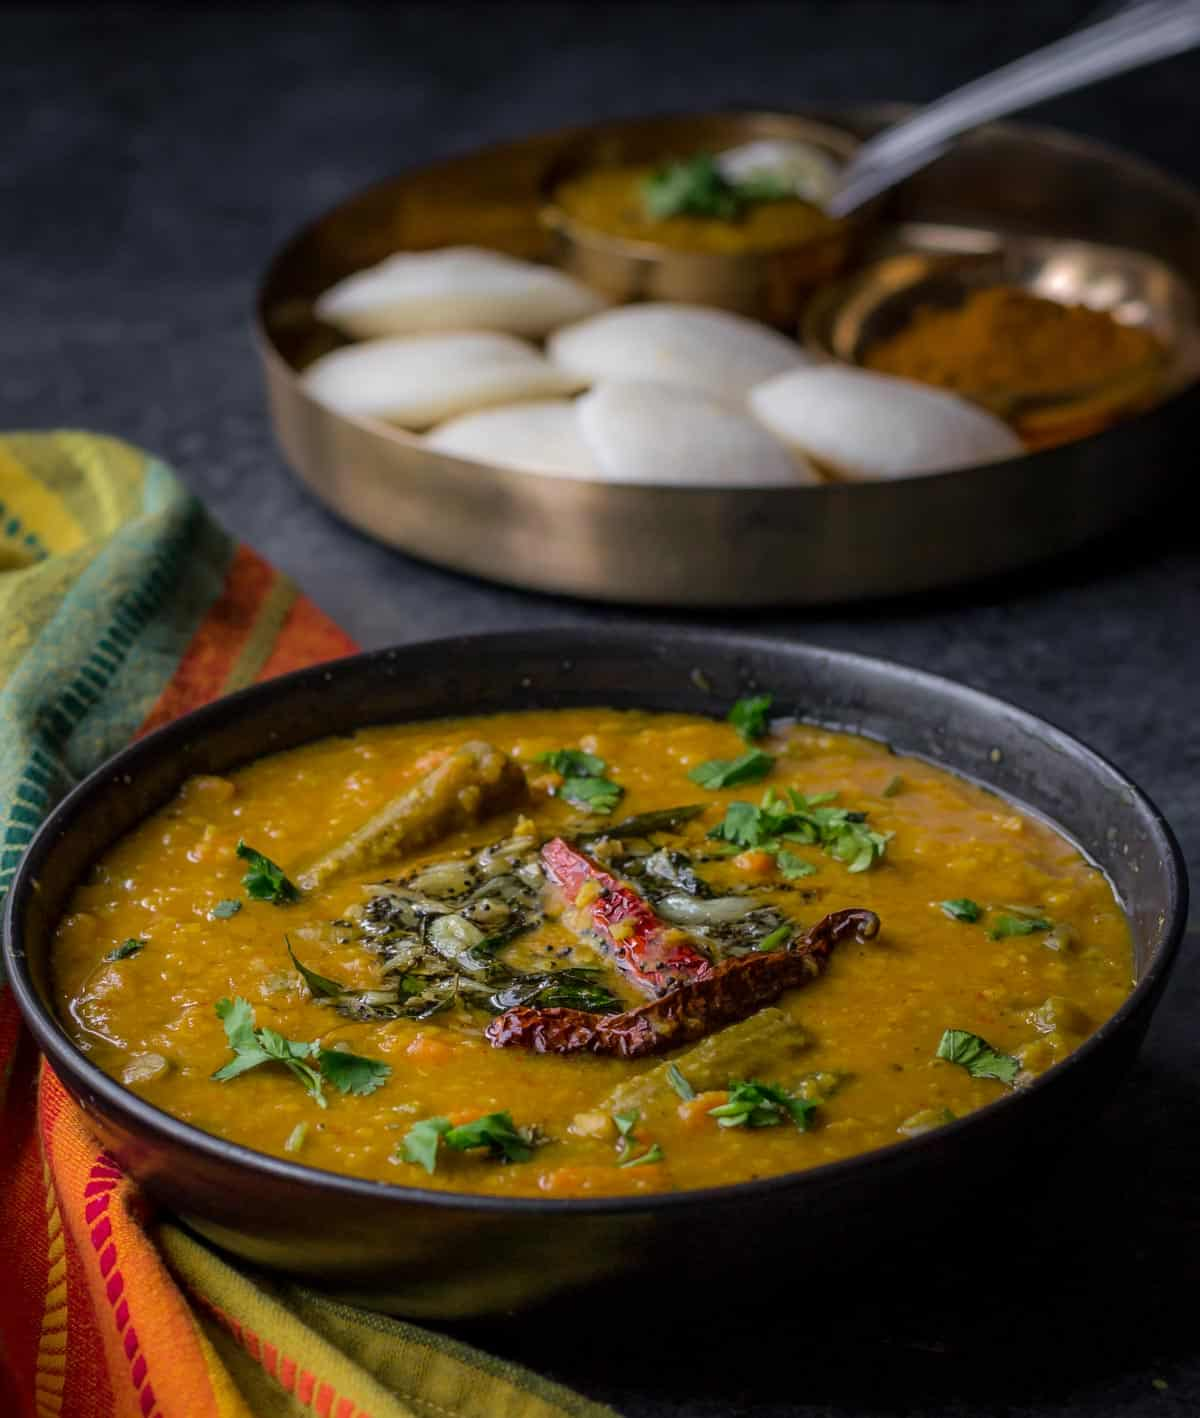 Sambar or Sambhar is a tangy and mildly spicy lentil-vegetable stew from the southern part of India. It is a staple in most South Indian homes and is served alongside idlis or dosas for breakfast or with rice for lunch/dinner.